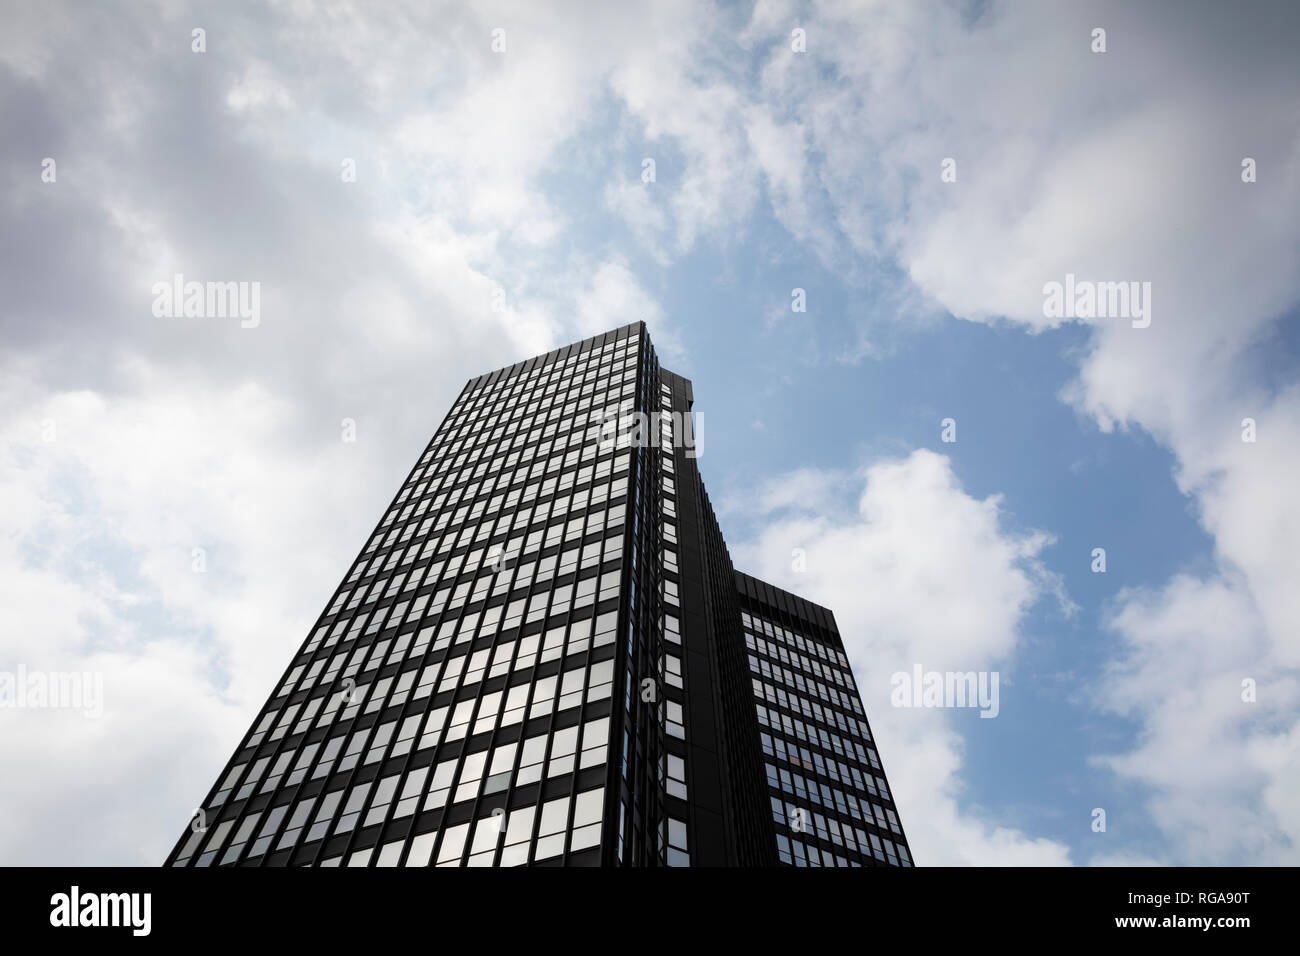 Germany, Essen, town hall seen from below - Stock Image